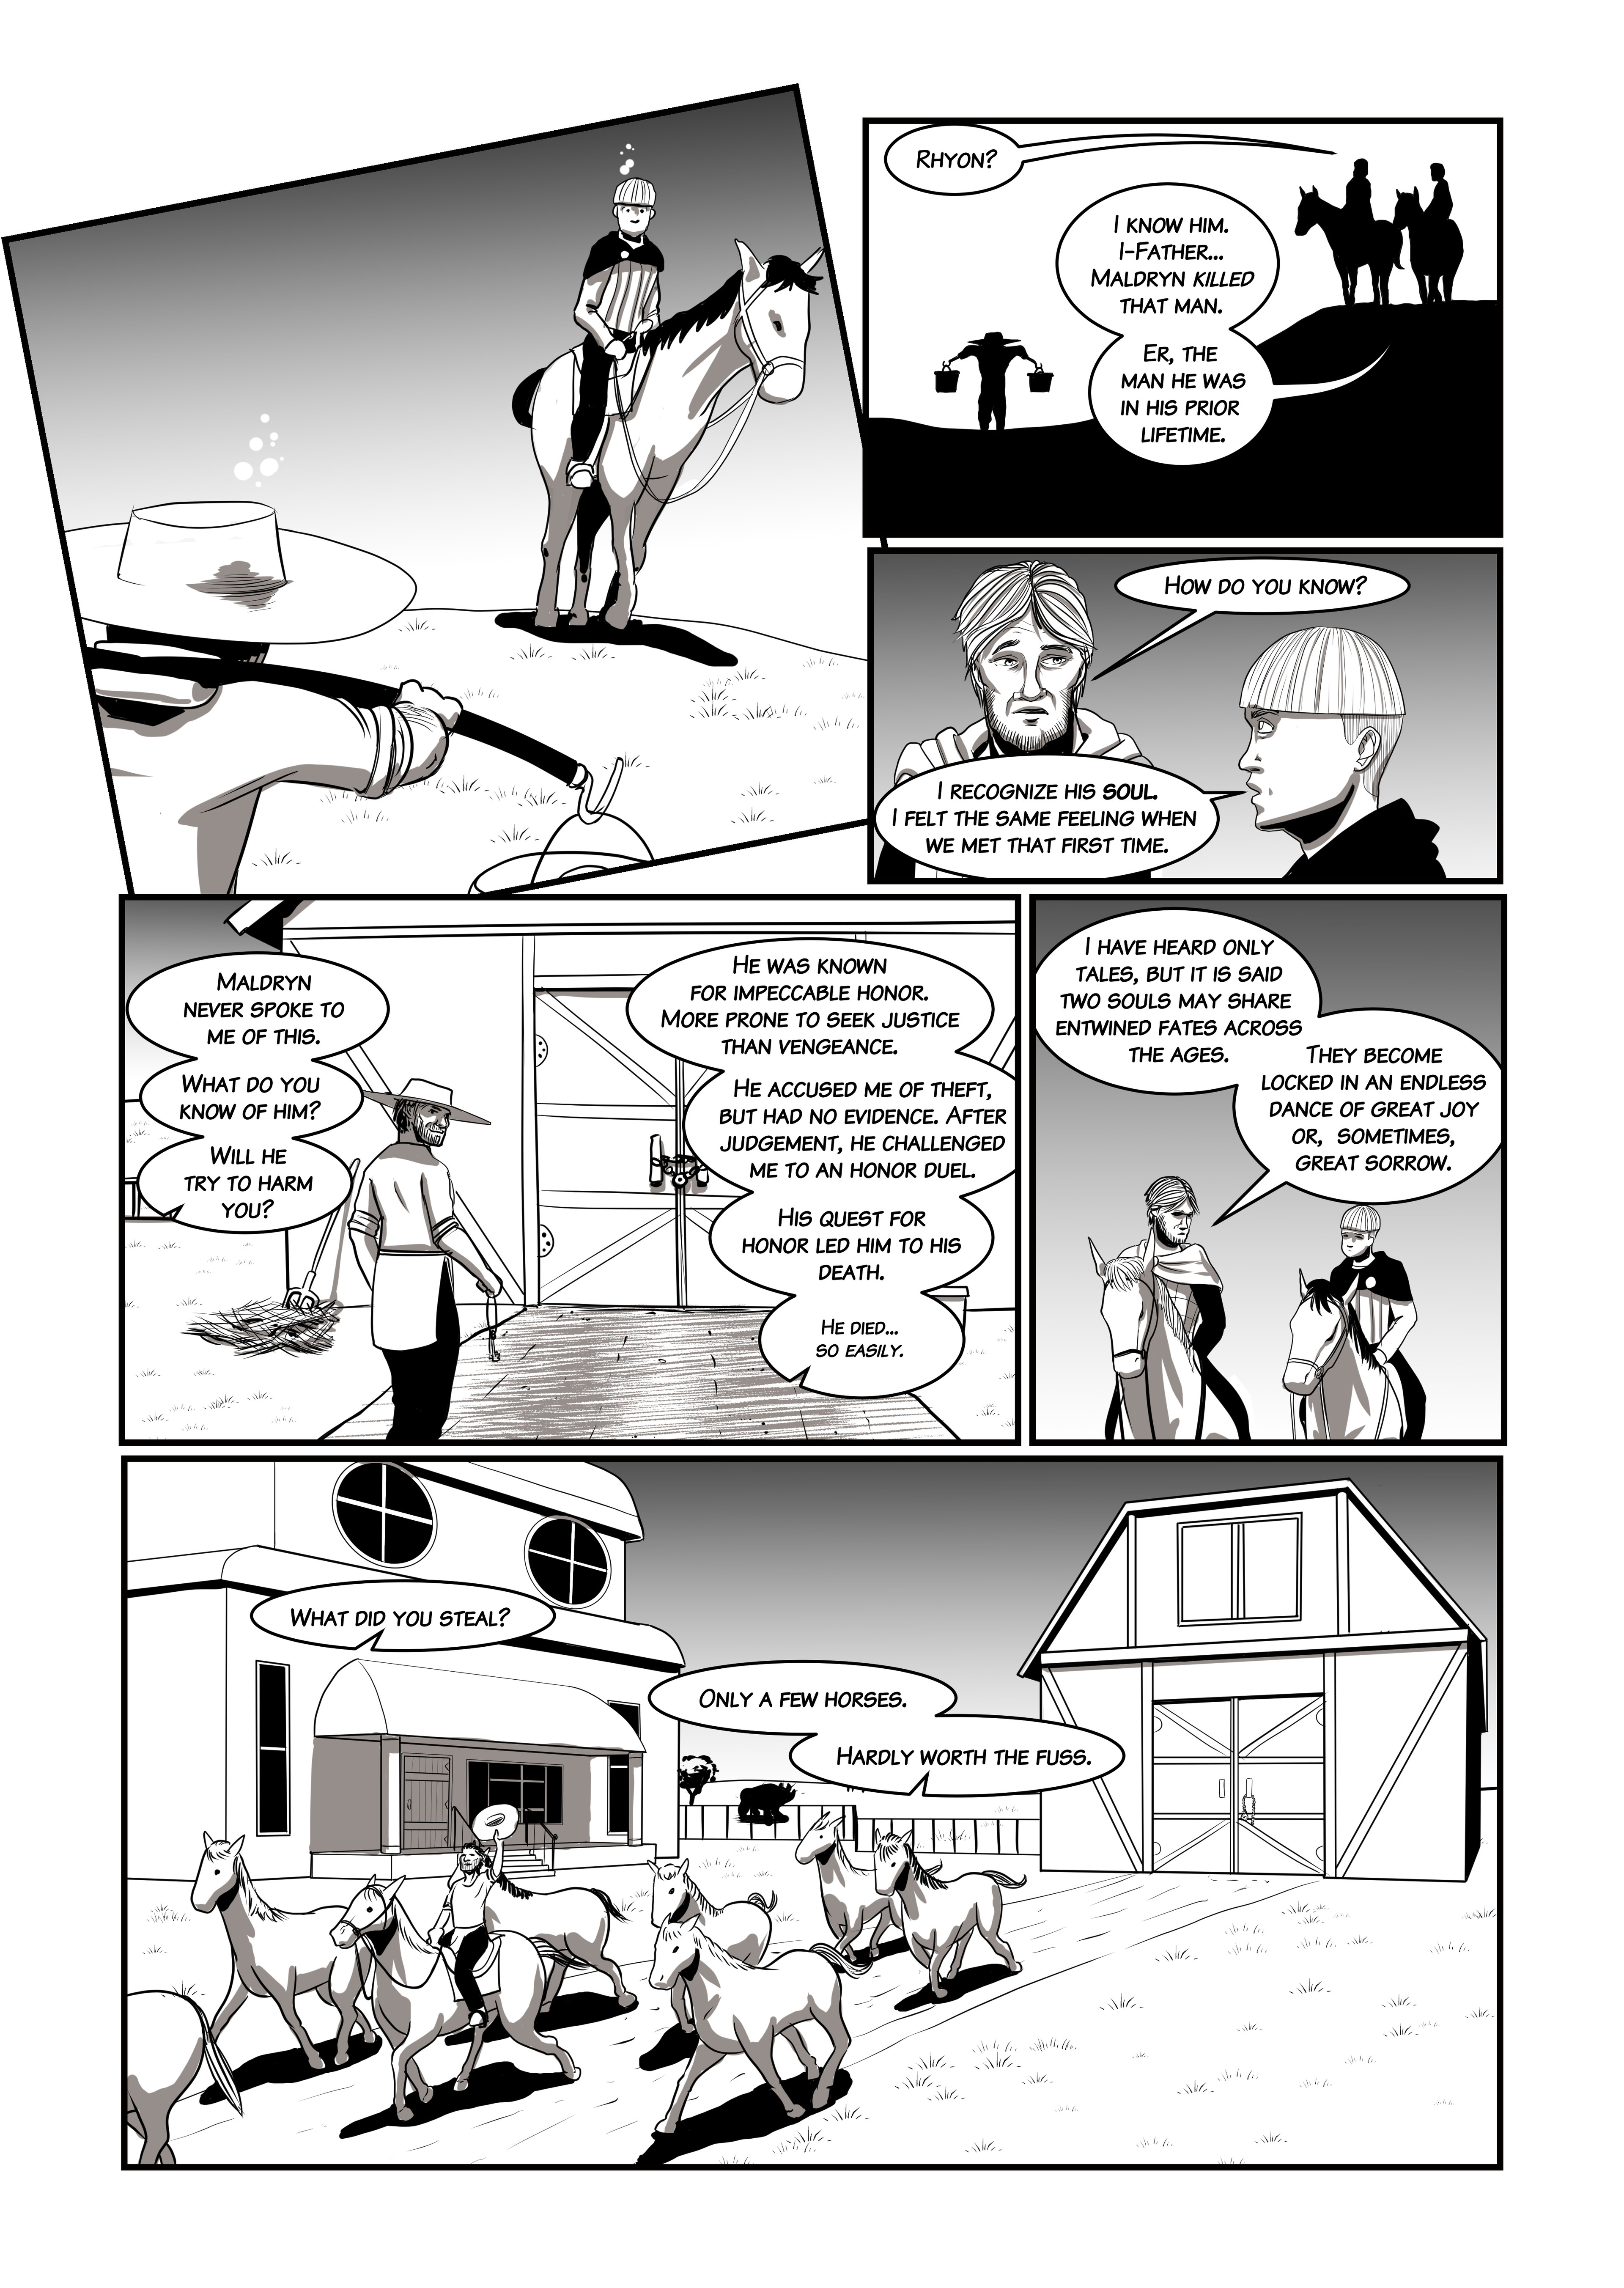 """Page 3 of """"Debts Owed,"""" a short comic story for the upcoming online game Chronicles of Elyria."""